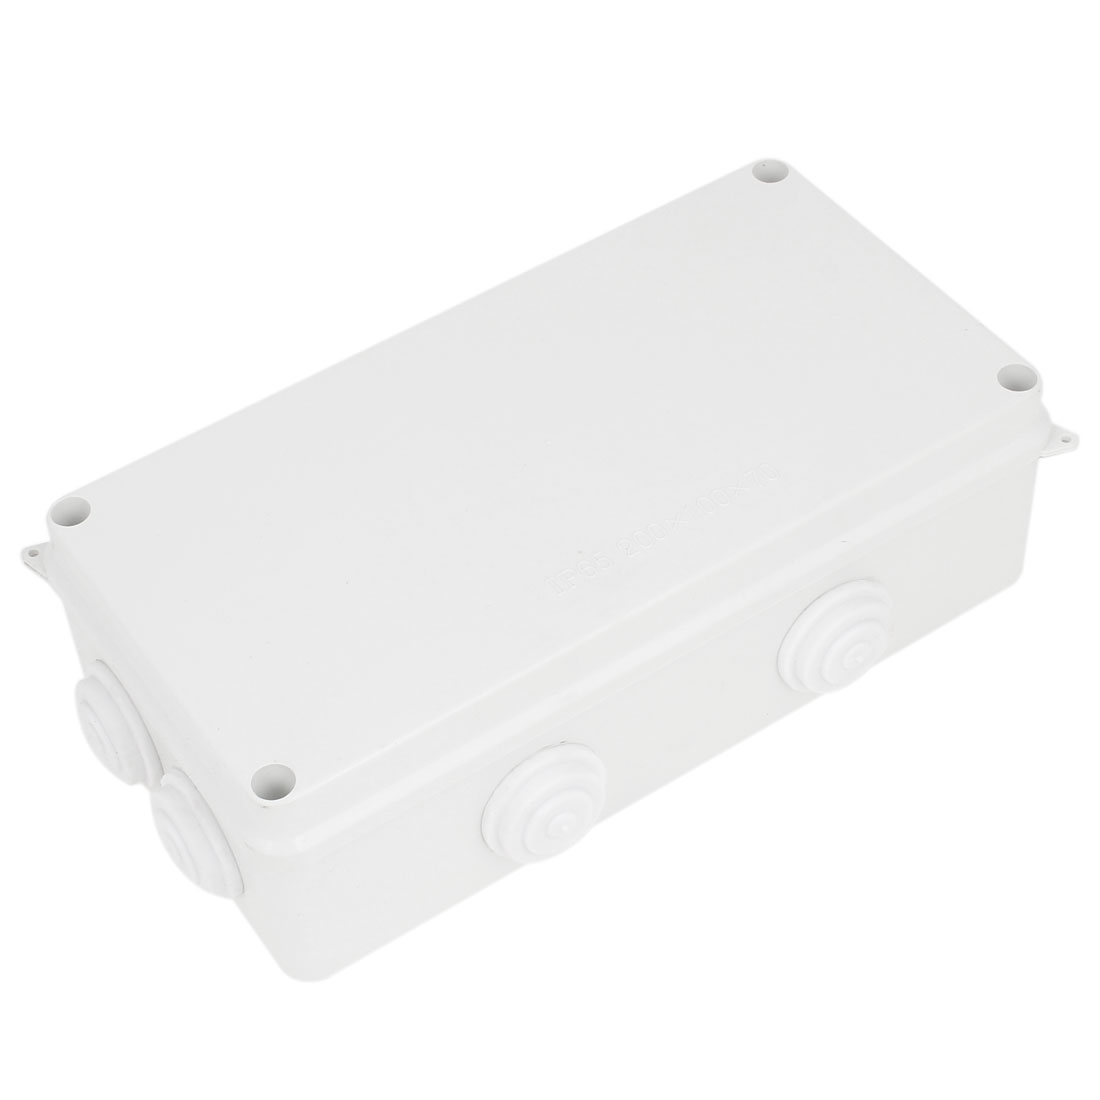 ABS 28mm Hole 8 Cable Entries Junction Box 200x100x70mm